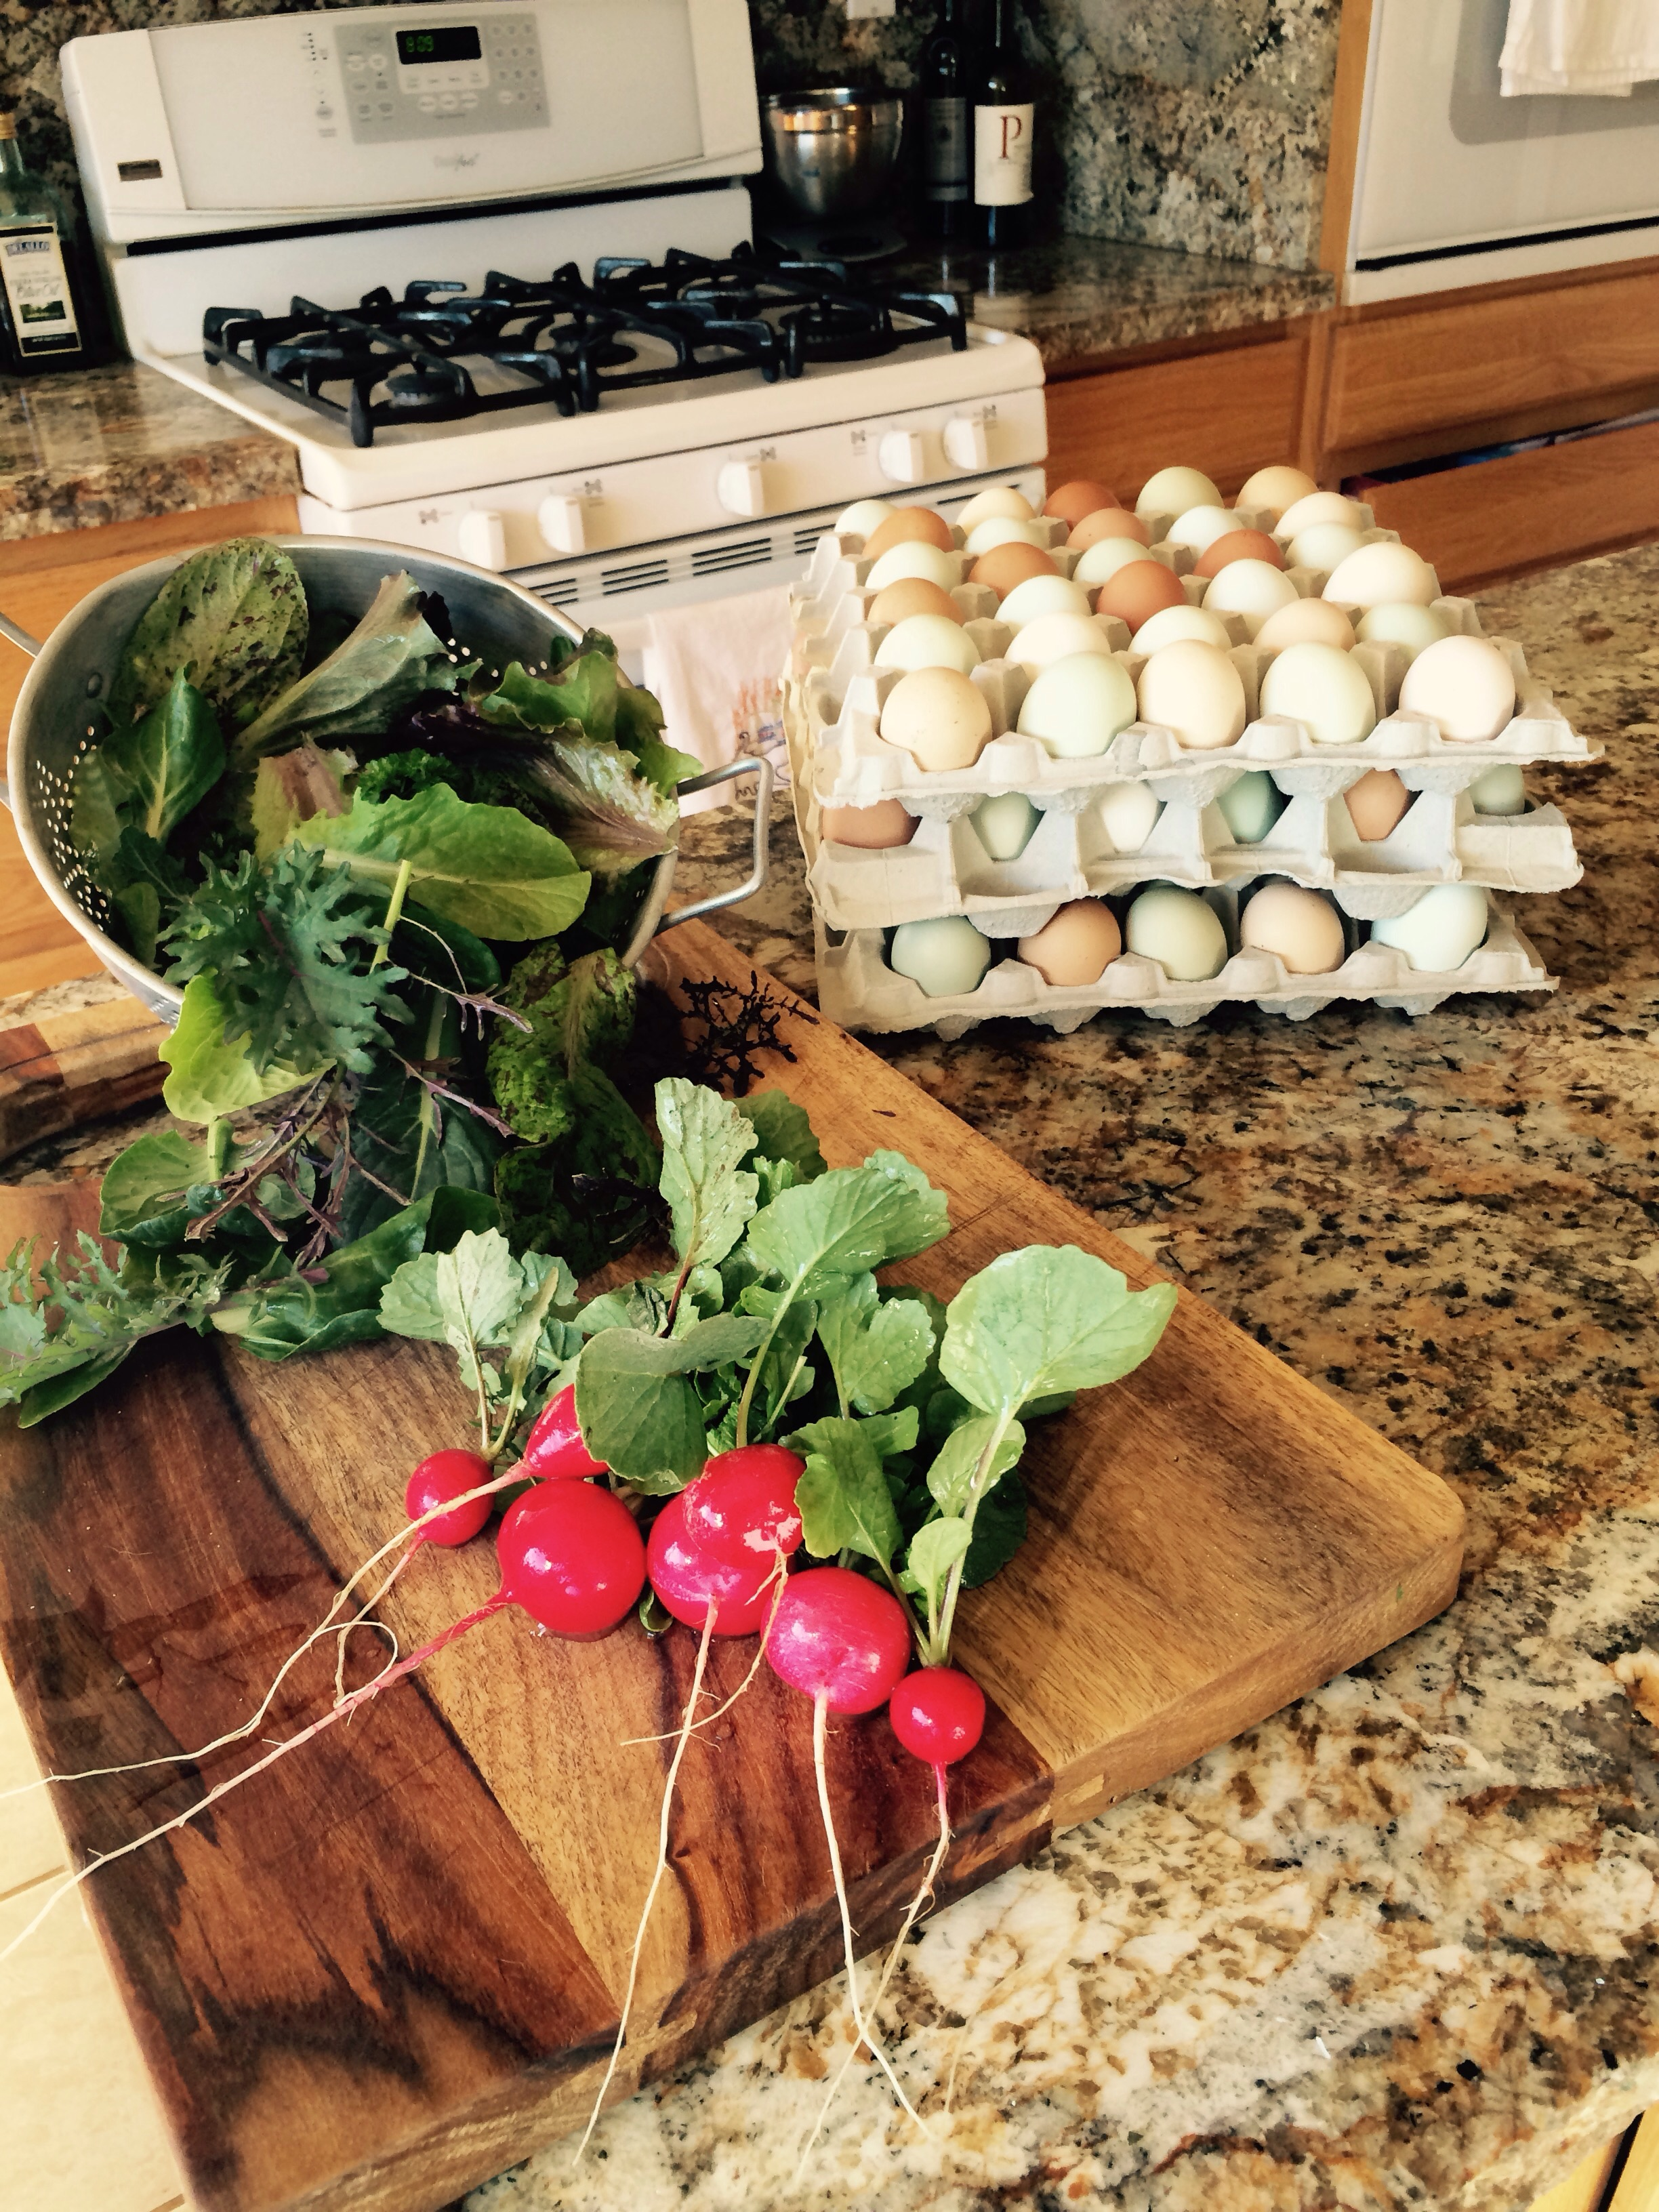 Farm fresh organic pastured egggs available we will have some at classic realty on postal road $6 per dozen or $15 per flat see Michael Griffin